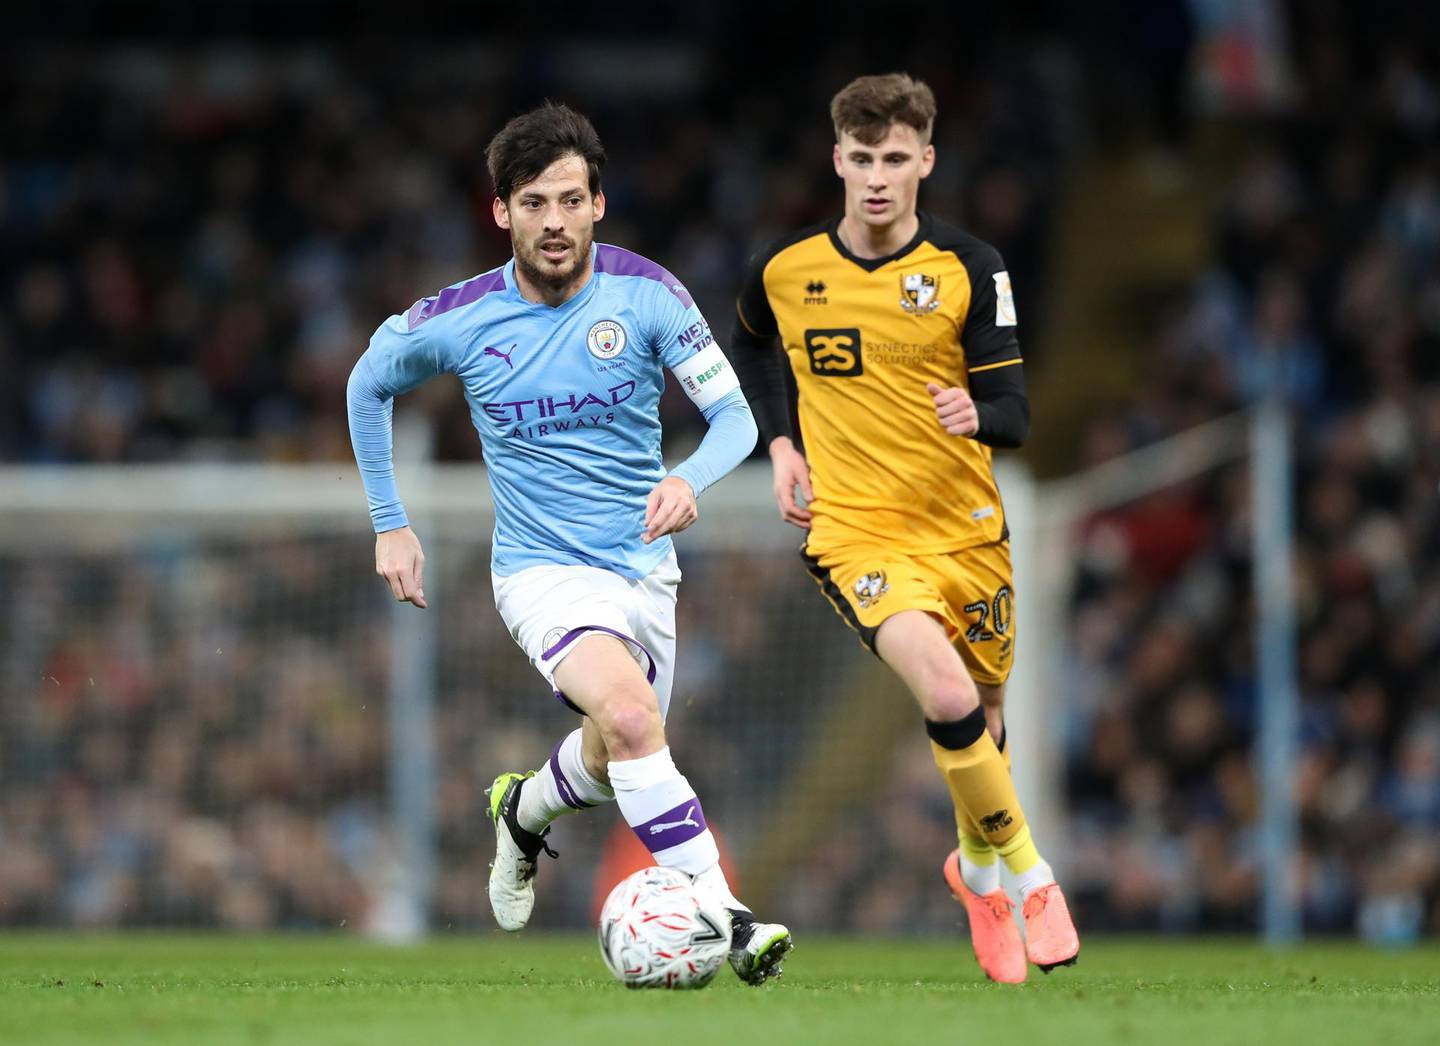 MANCHESTER, ENGLAND - JANUARY 04: David Silva of Manchester City runs with the ball under pressure from Scott Burgess of Port Vale during the FA Cup Third Round match between Manchester City and Port Vale at Etihad Stadium on January 04, 2020 in Manchester, England. (Photo by Alex Livesey/Getty Images)